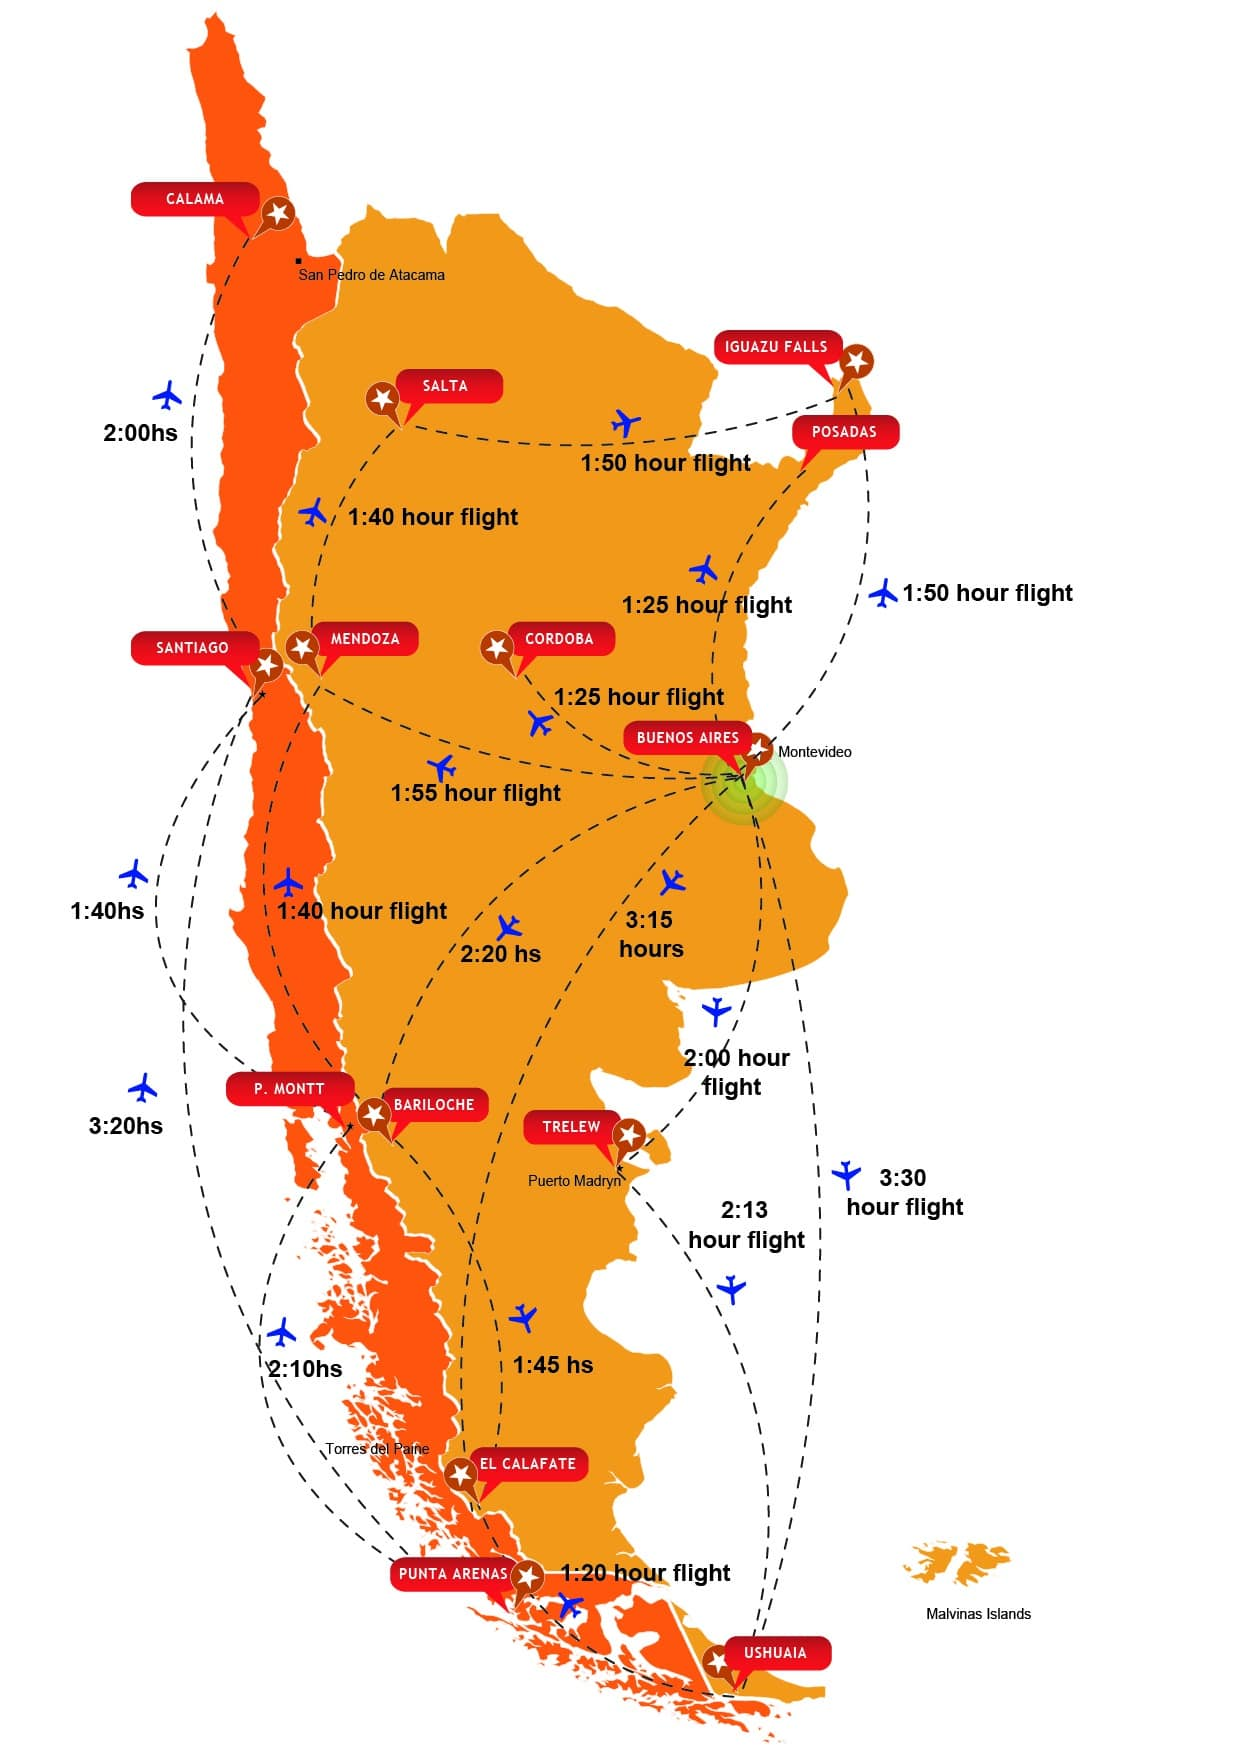 Approximated flight times between main destinations in Argentina and Chile - RipioTurismo DMC for Argentina